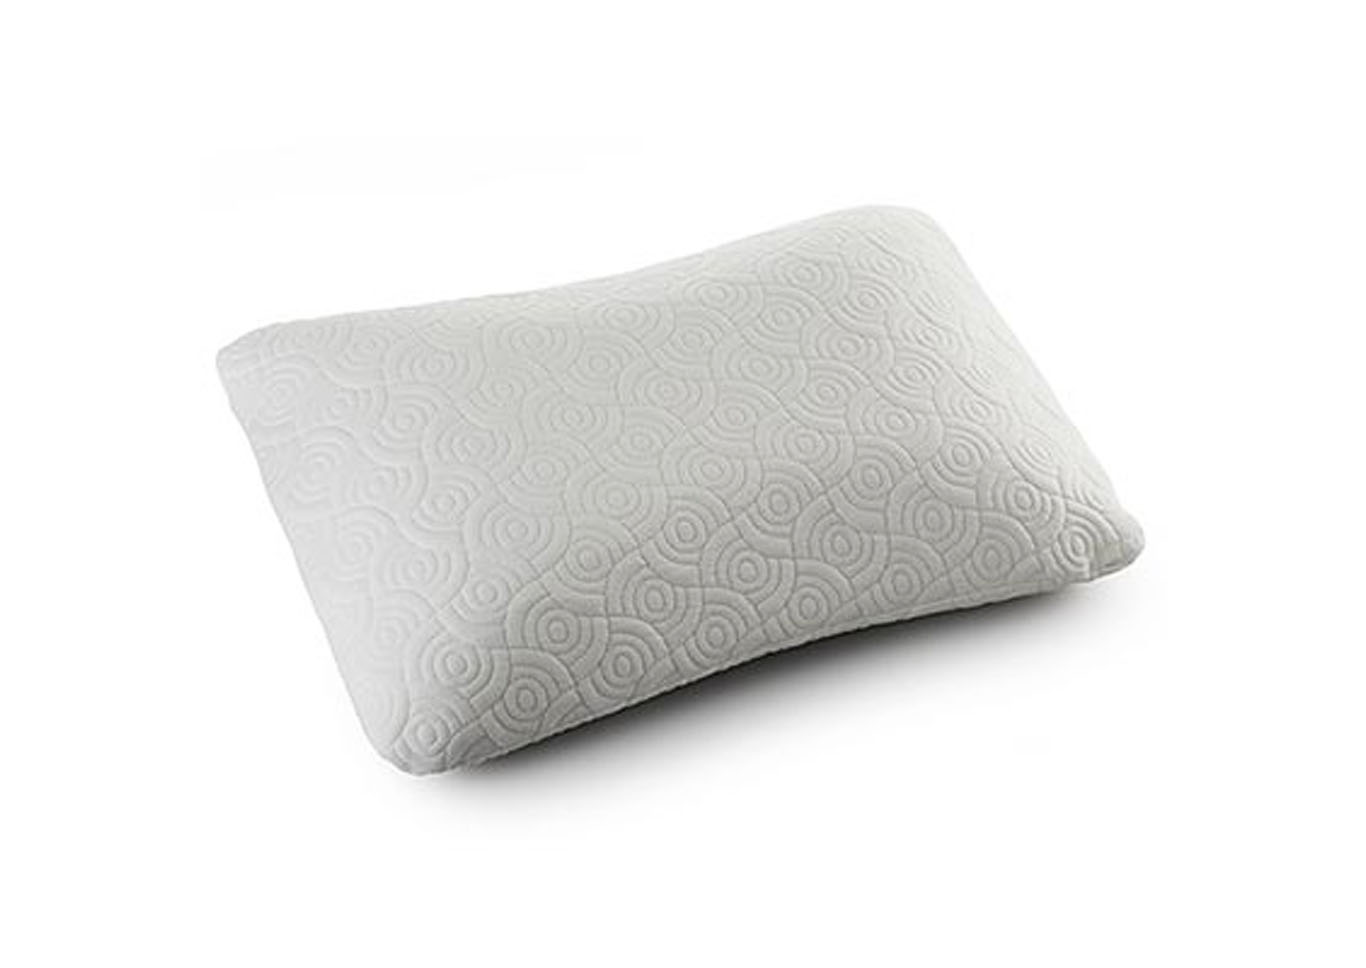 Gel Bliss Pillow,Instore